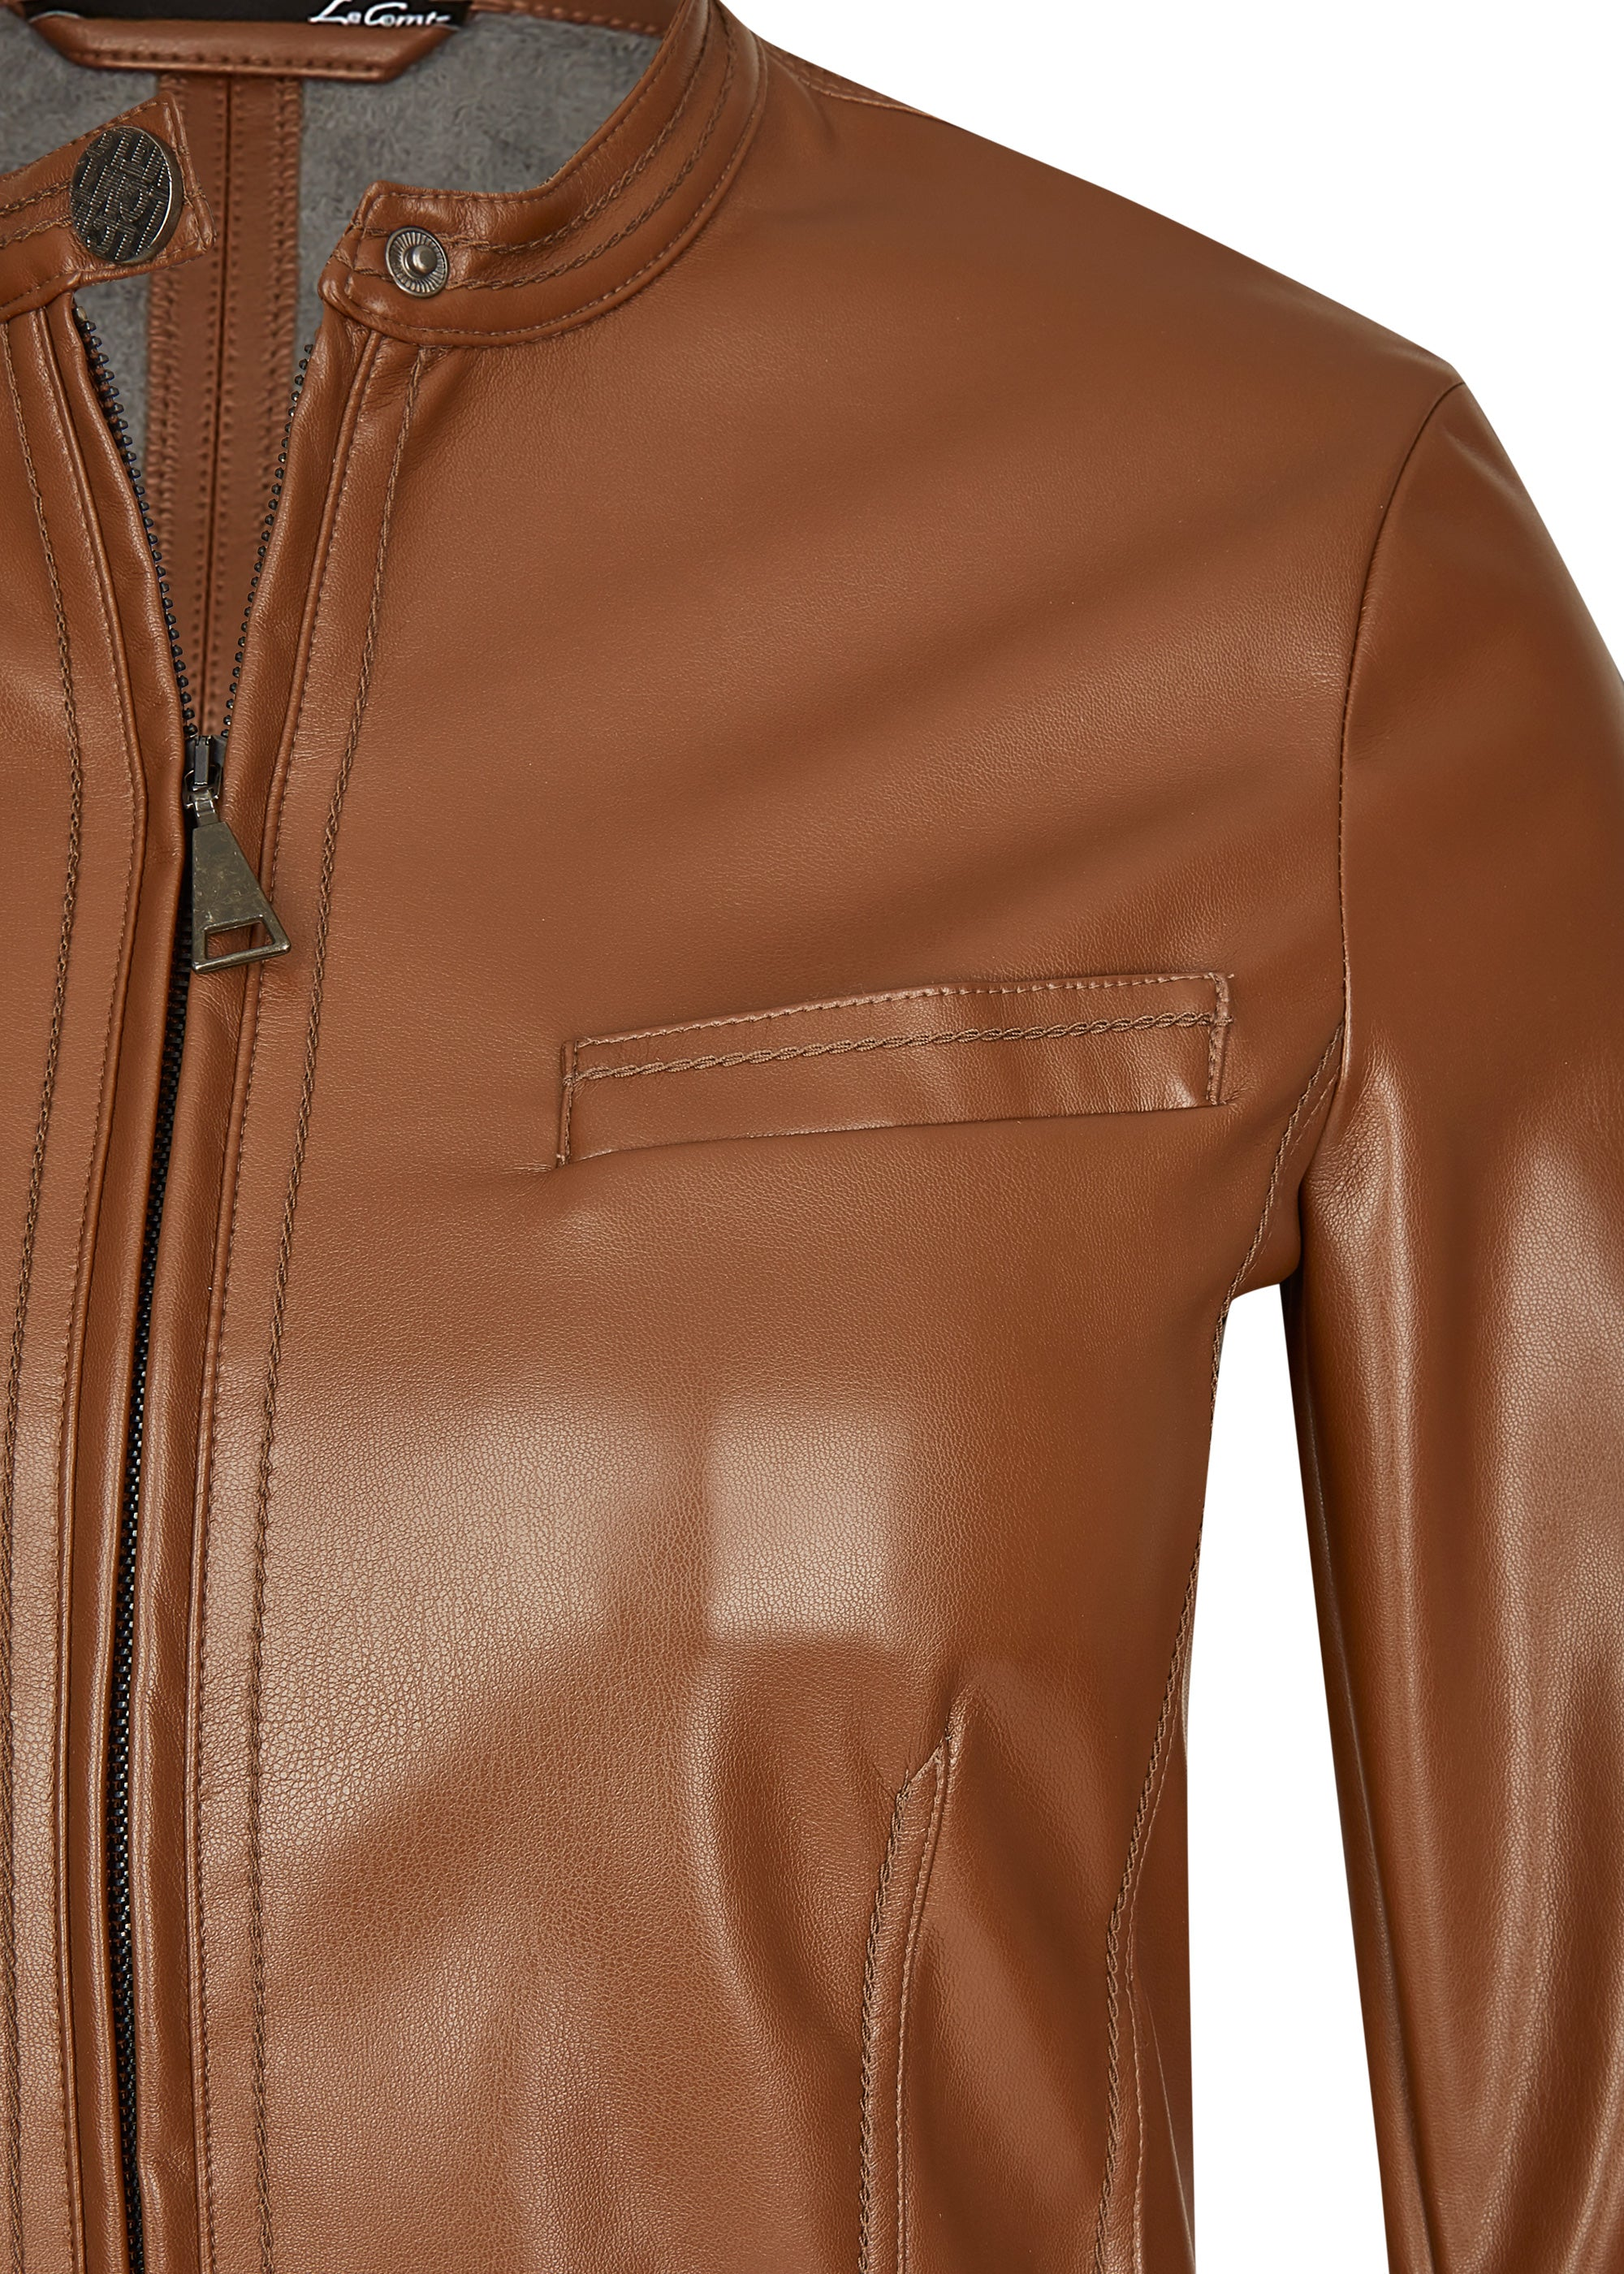 Le Comte Faux Leather Jacket 611022